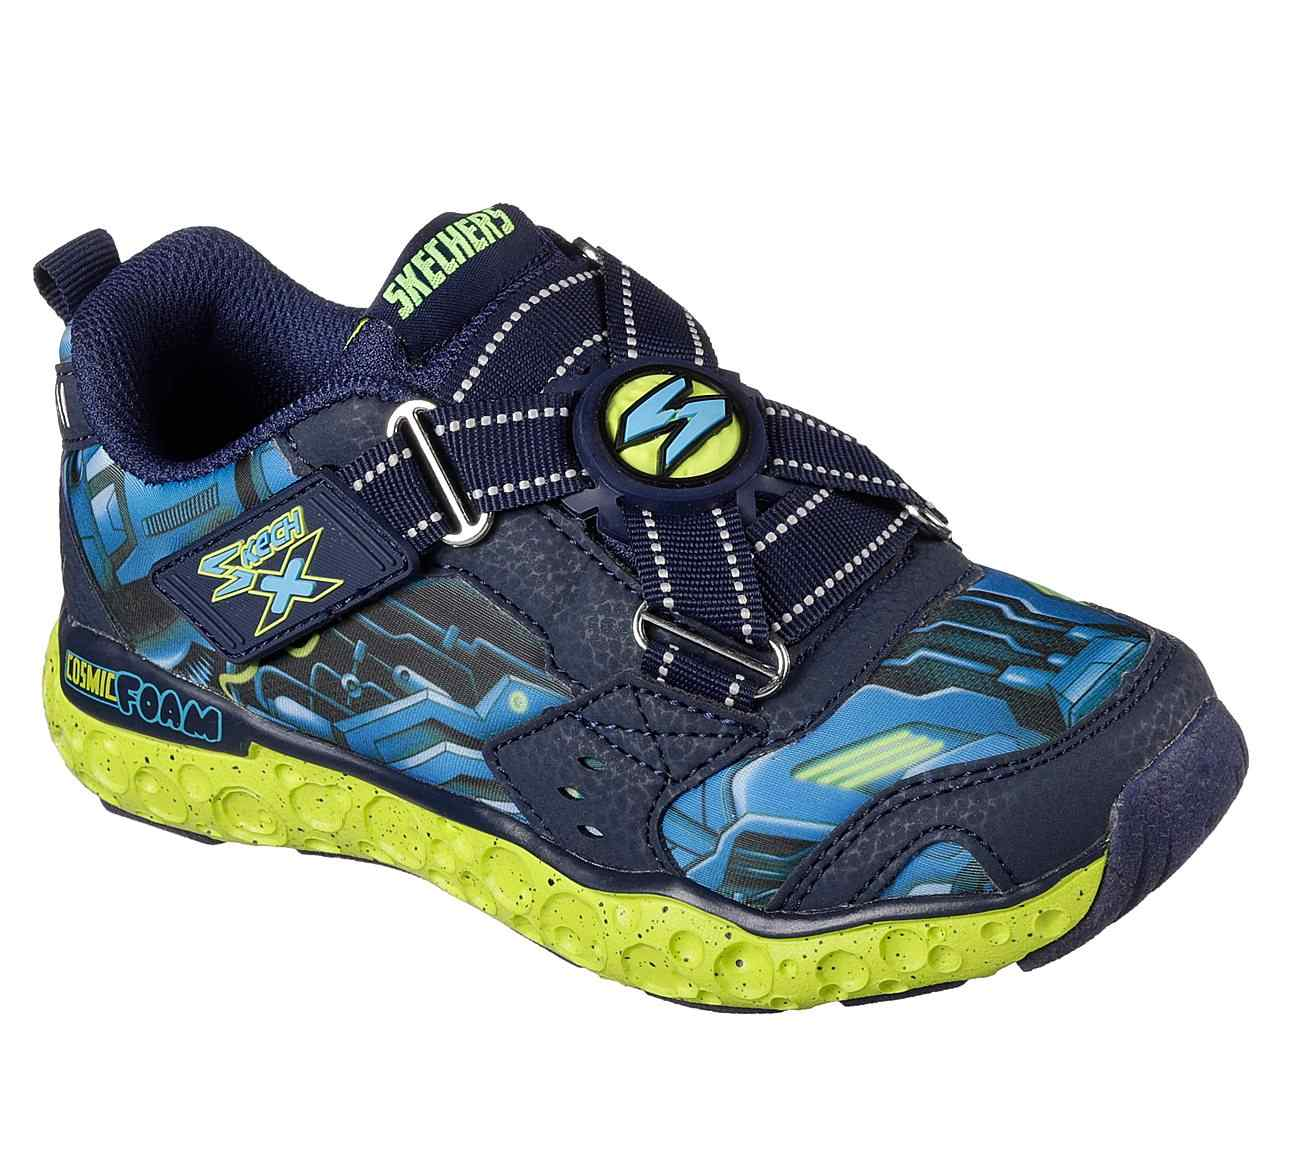 a0f018a0e96 Skechers Expo Sale Has Up To 80% Off Shoes & Apparel From 28-30 Jun